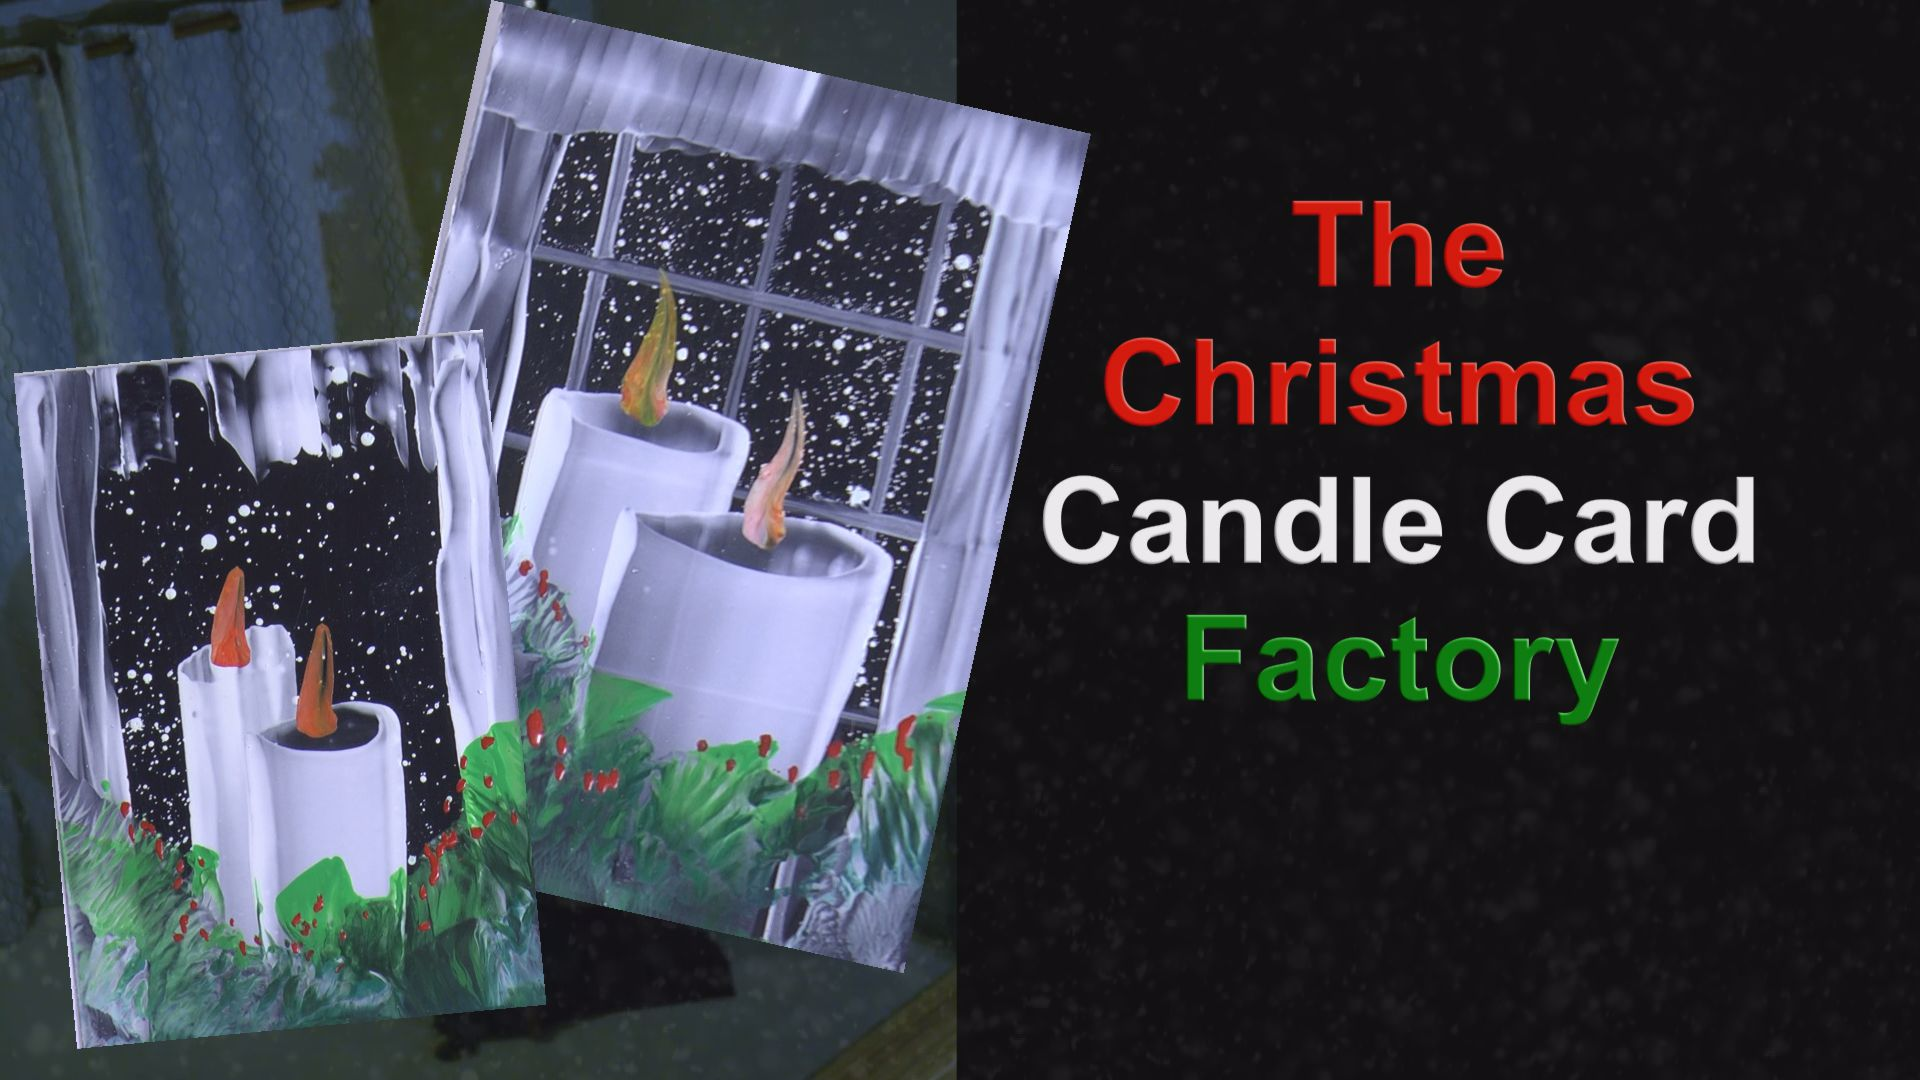 Video - The Christmas Candle Card Factory